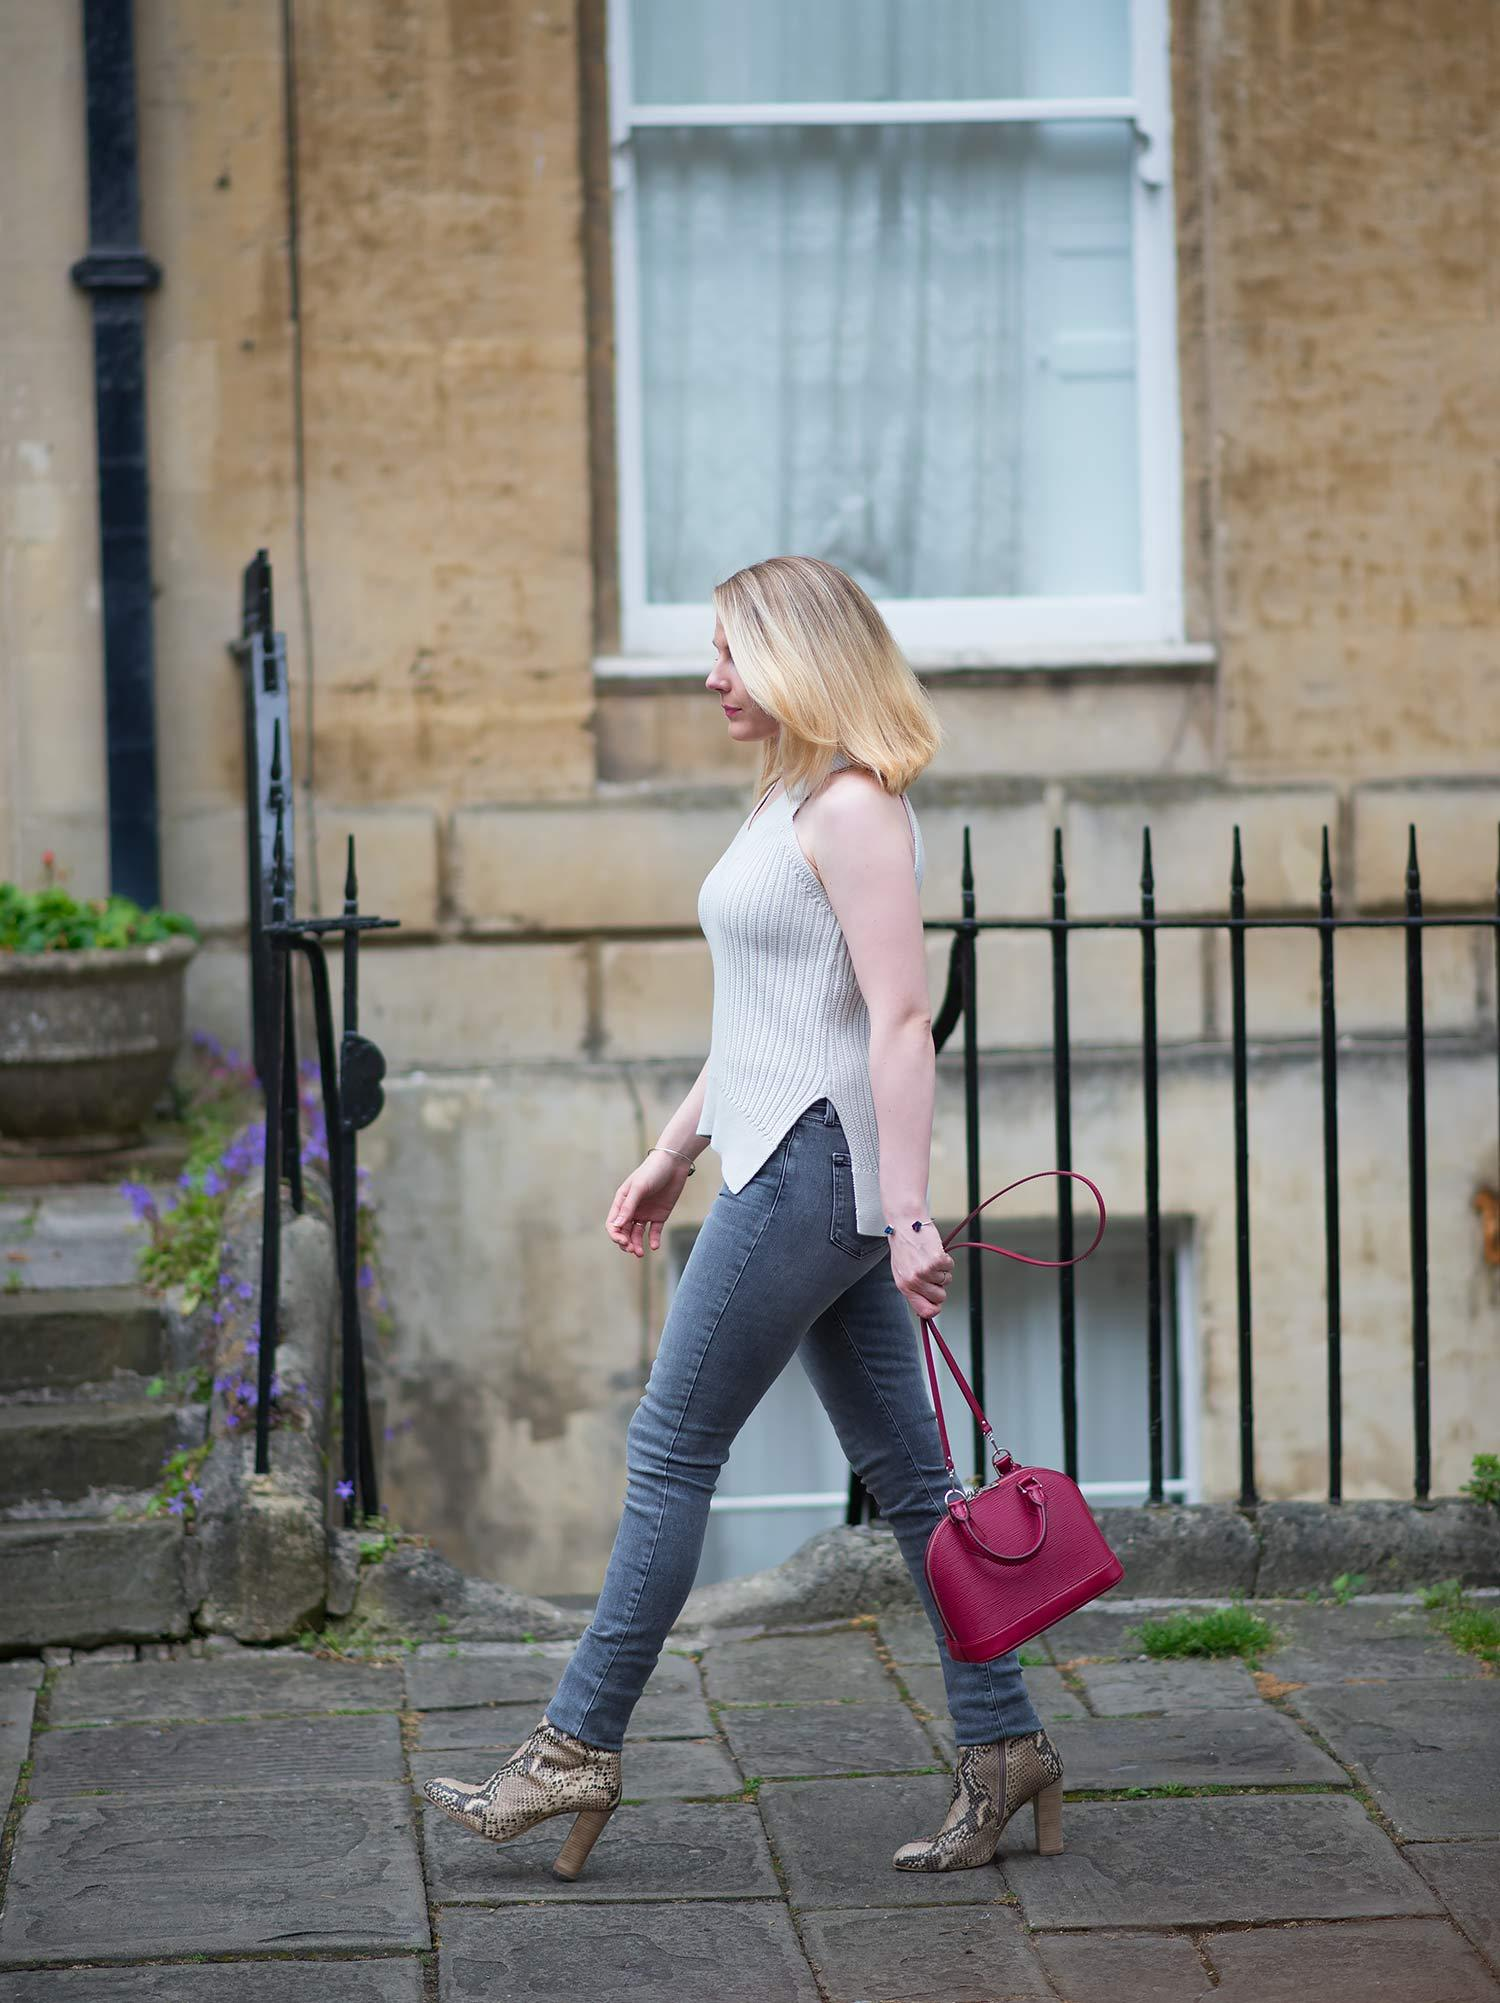 lorna-burford-grey-skinny-jeans-j-brand-all-saints-top